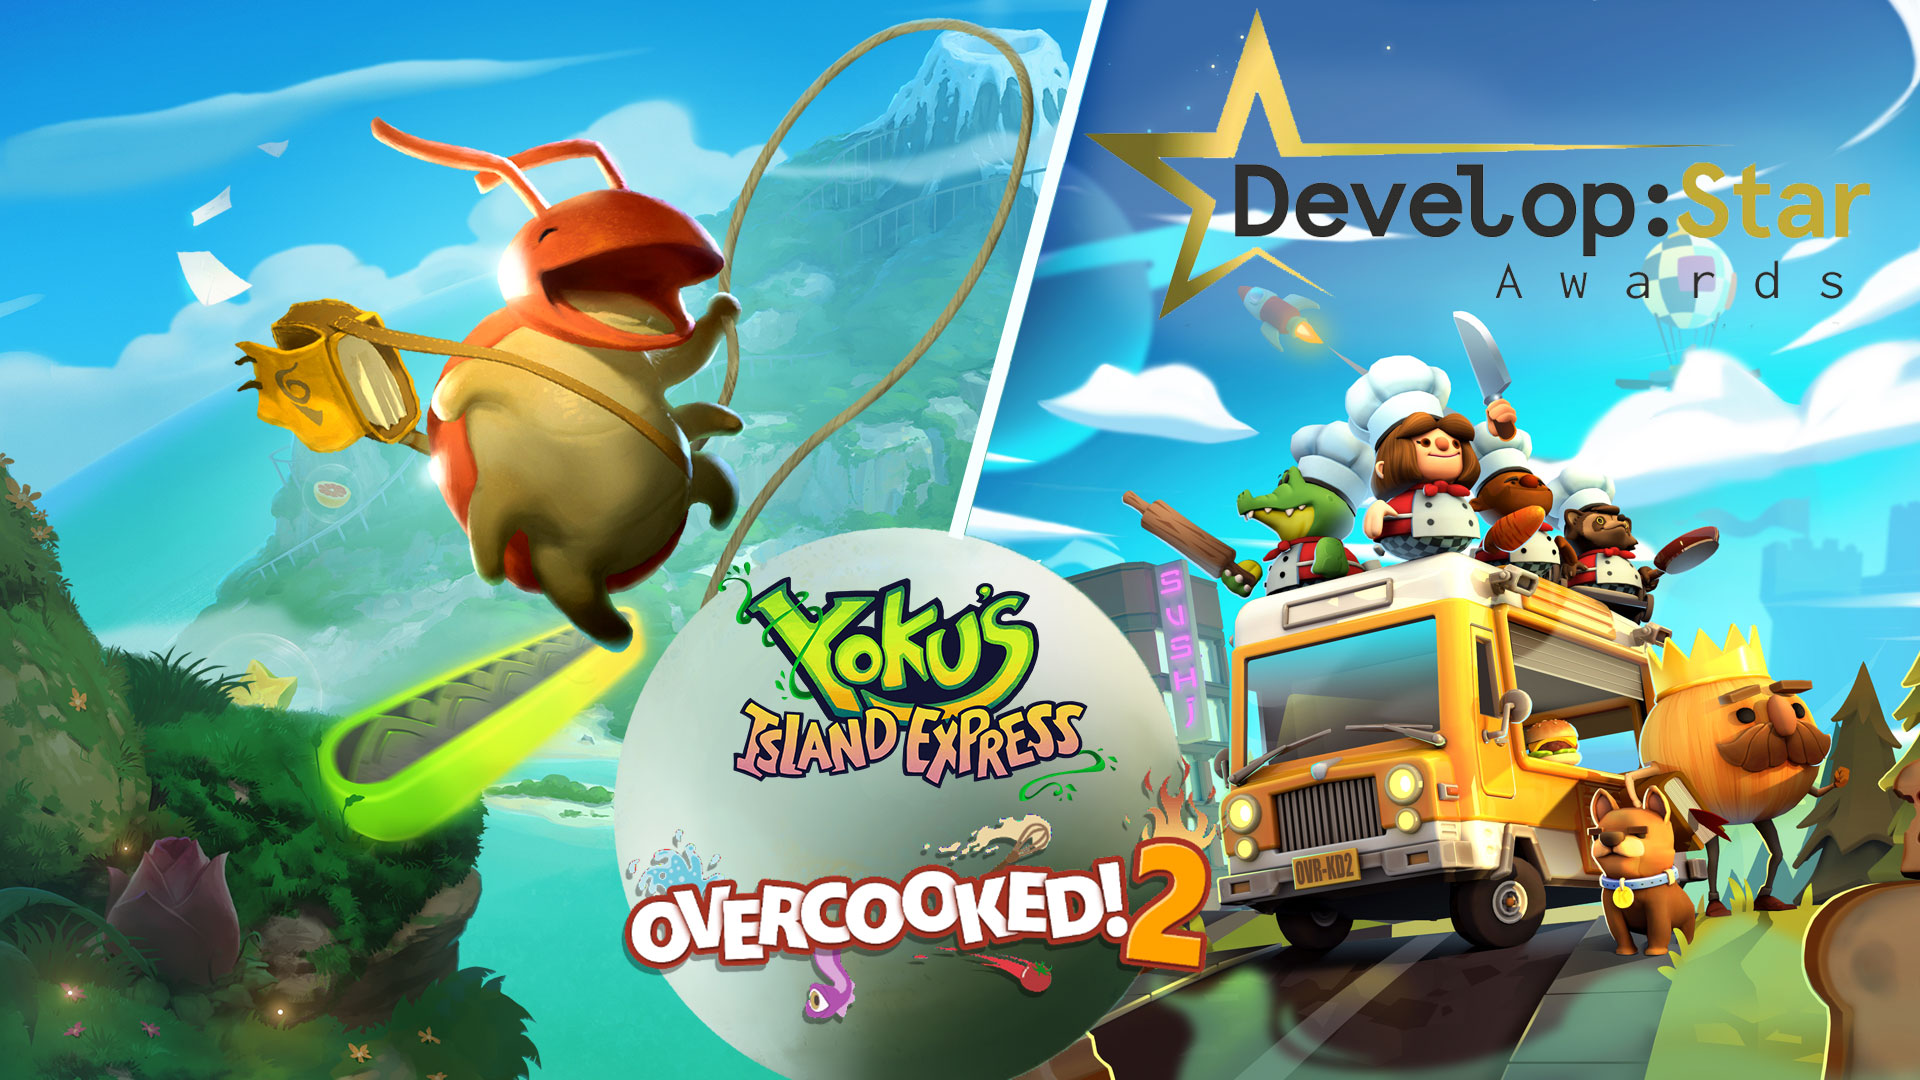 Overcooked! 2 & Yoku's Island Express nominated for Develop:Star Awards!